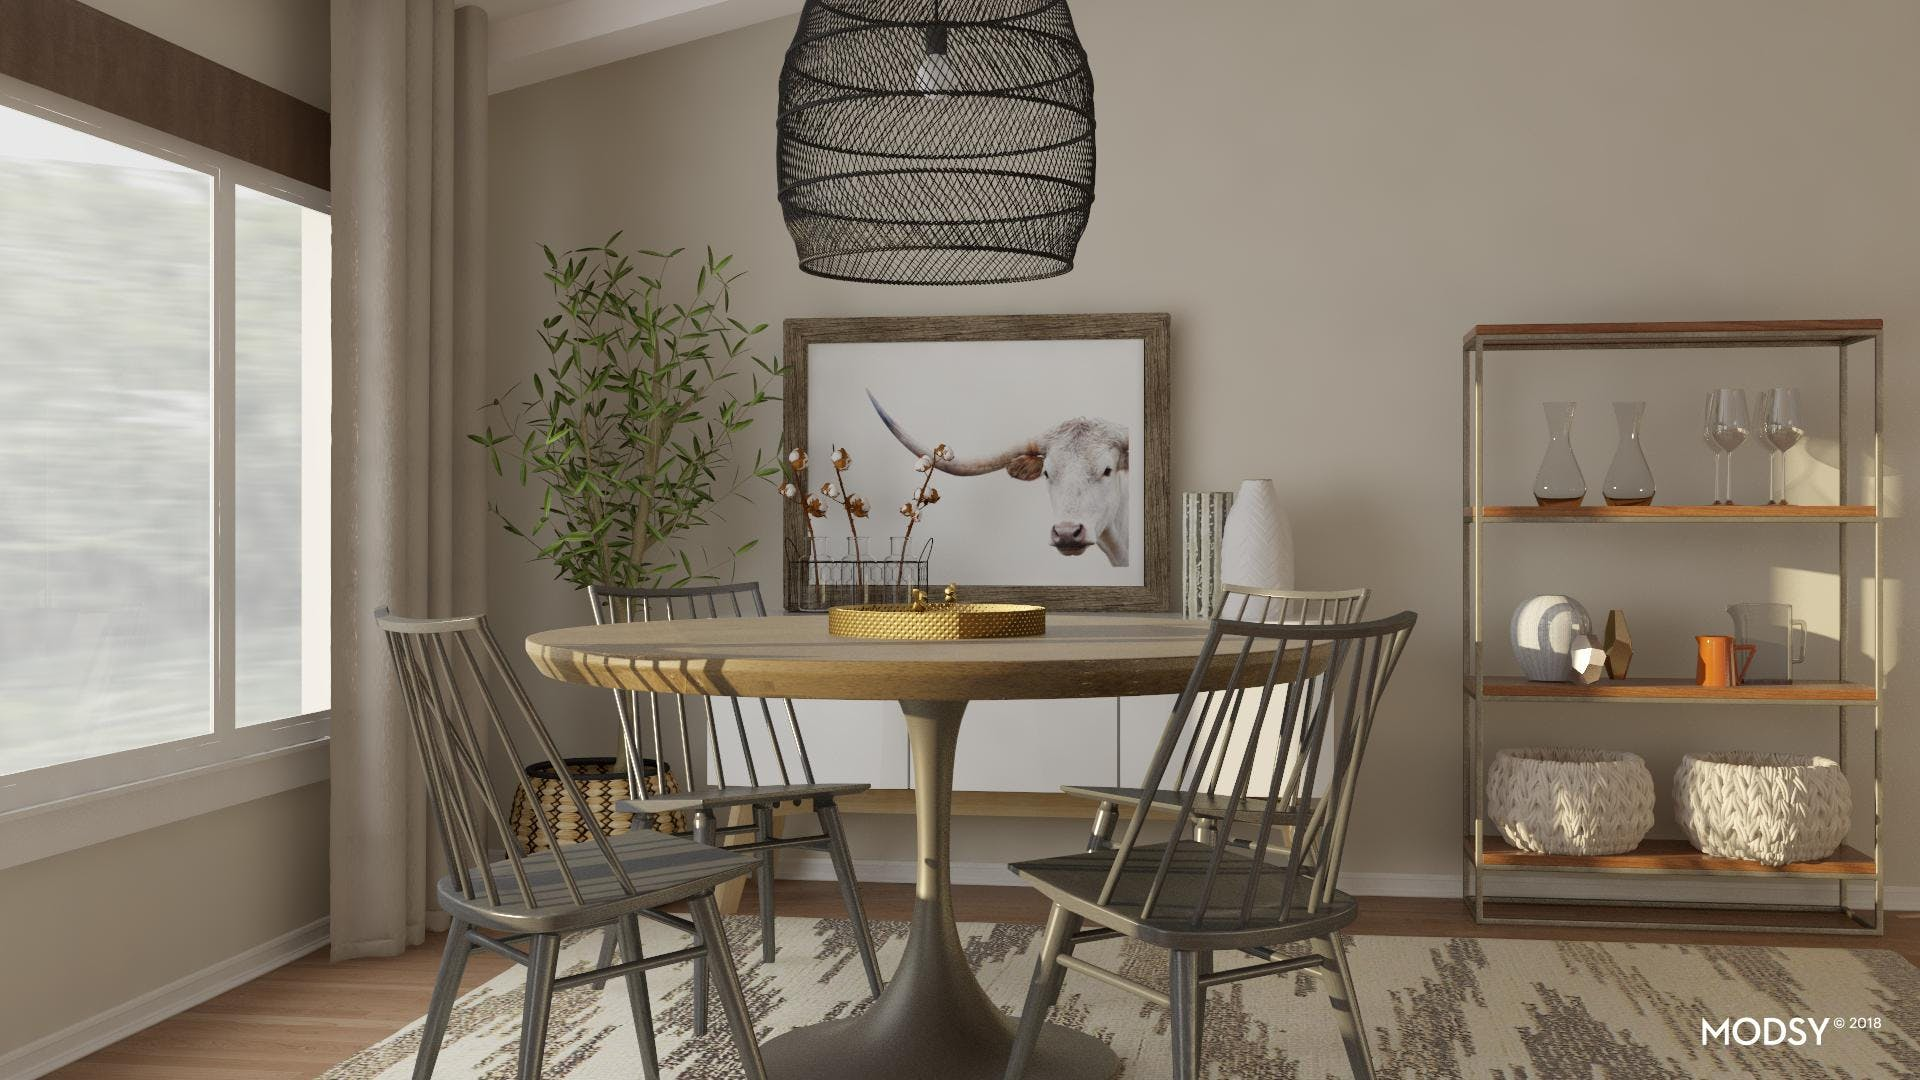 The New Modern Rustic Dining Look